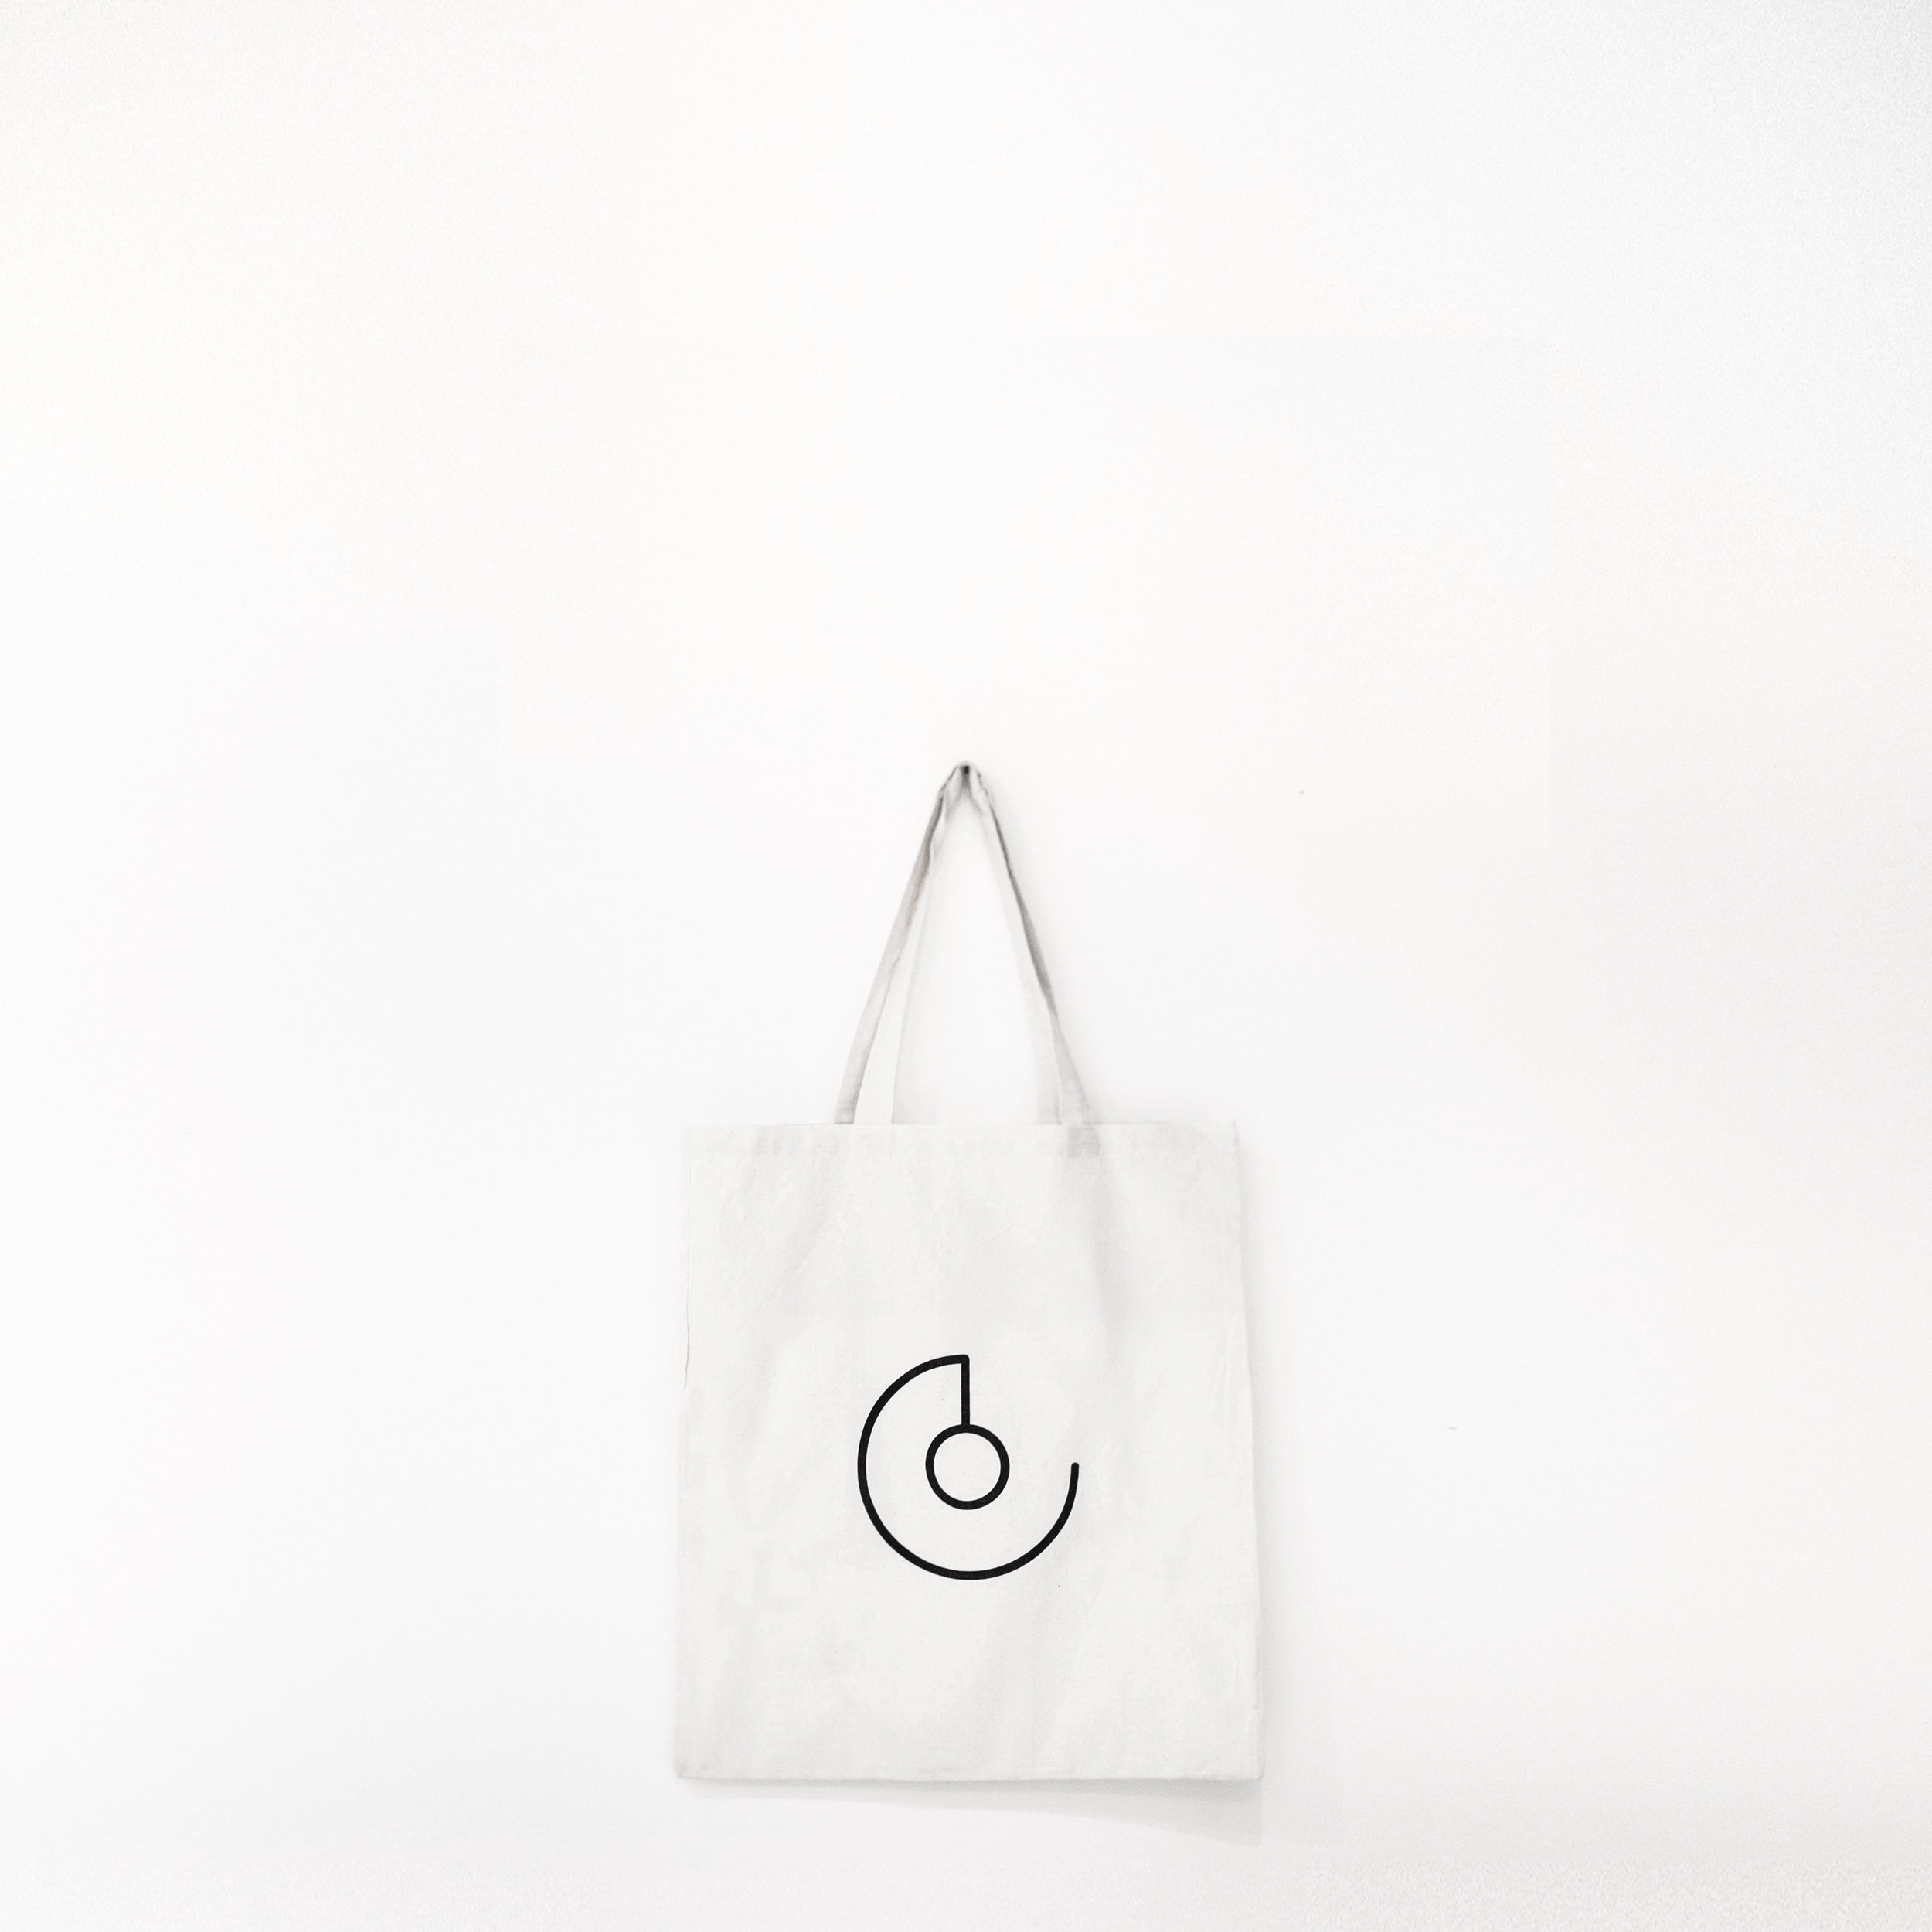 Canvas Bags - Holders of our custom-made Combini canvas bags receive a 5% discount on fresh food purchases, reducing the need to supply single-use paper bags.